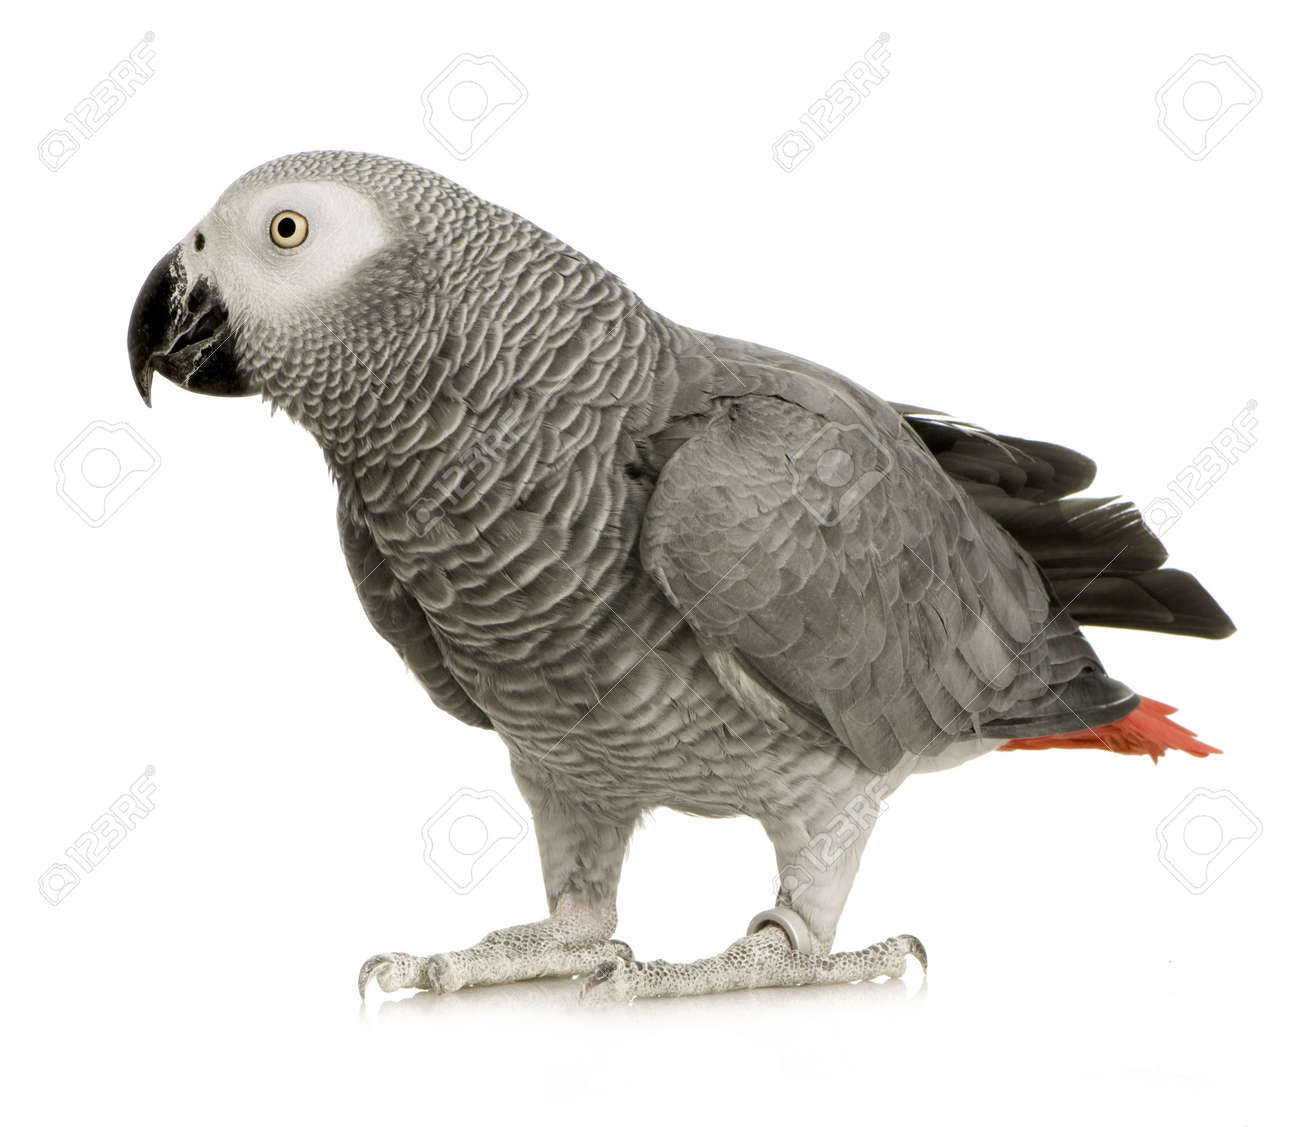 African Grey Parrot - Psittacus erithacus in front of a white background Stock Photo - 2408161